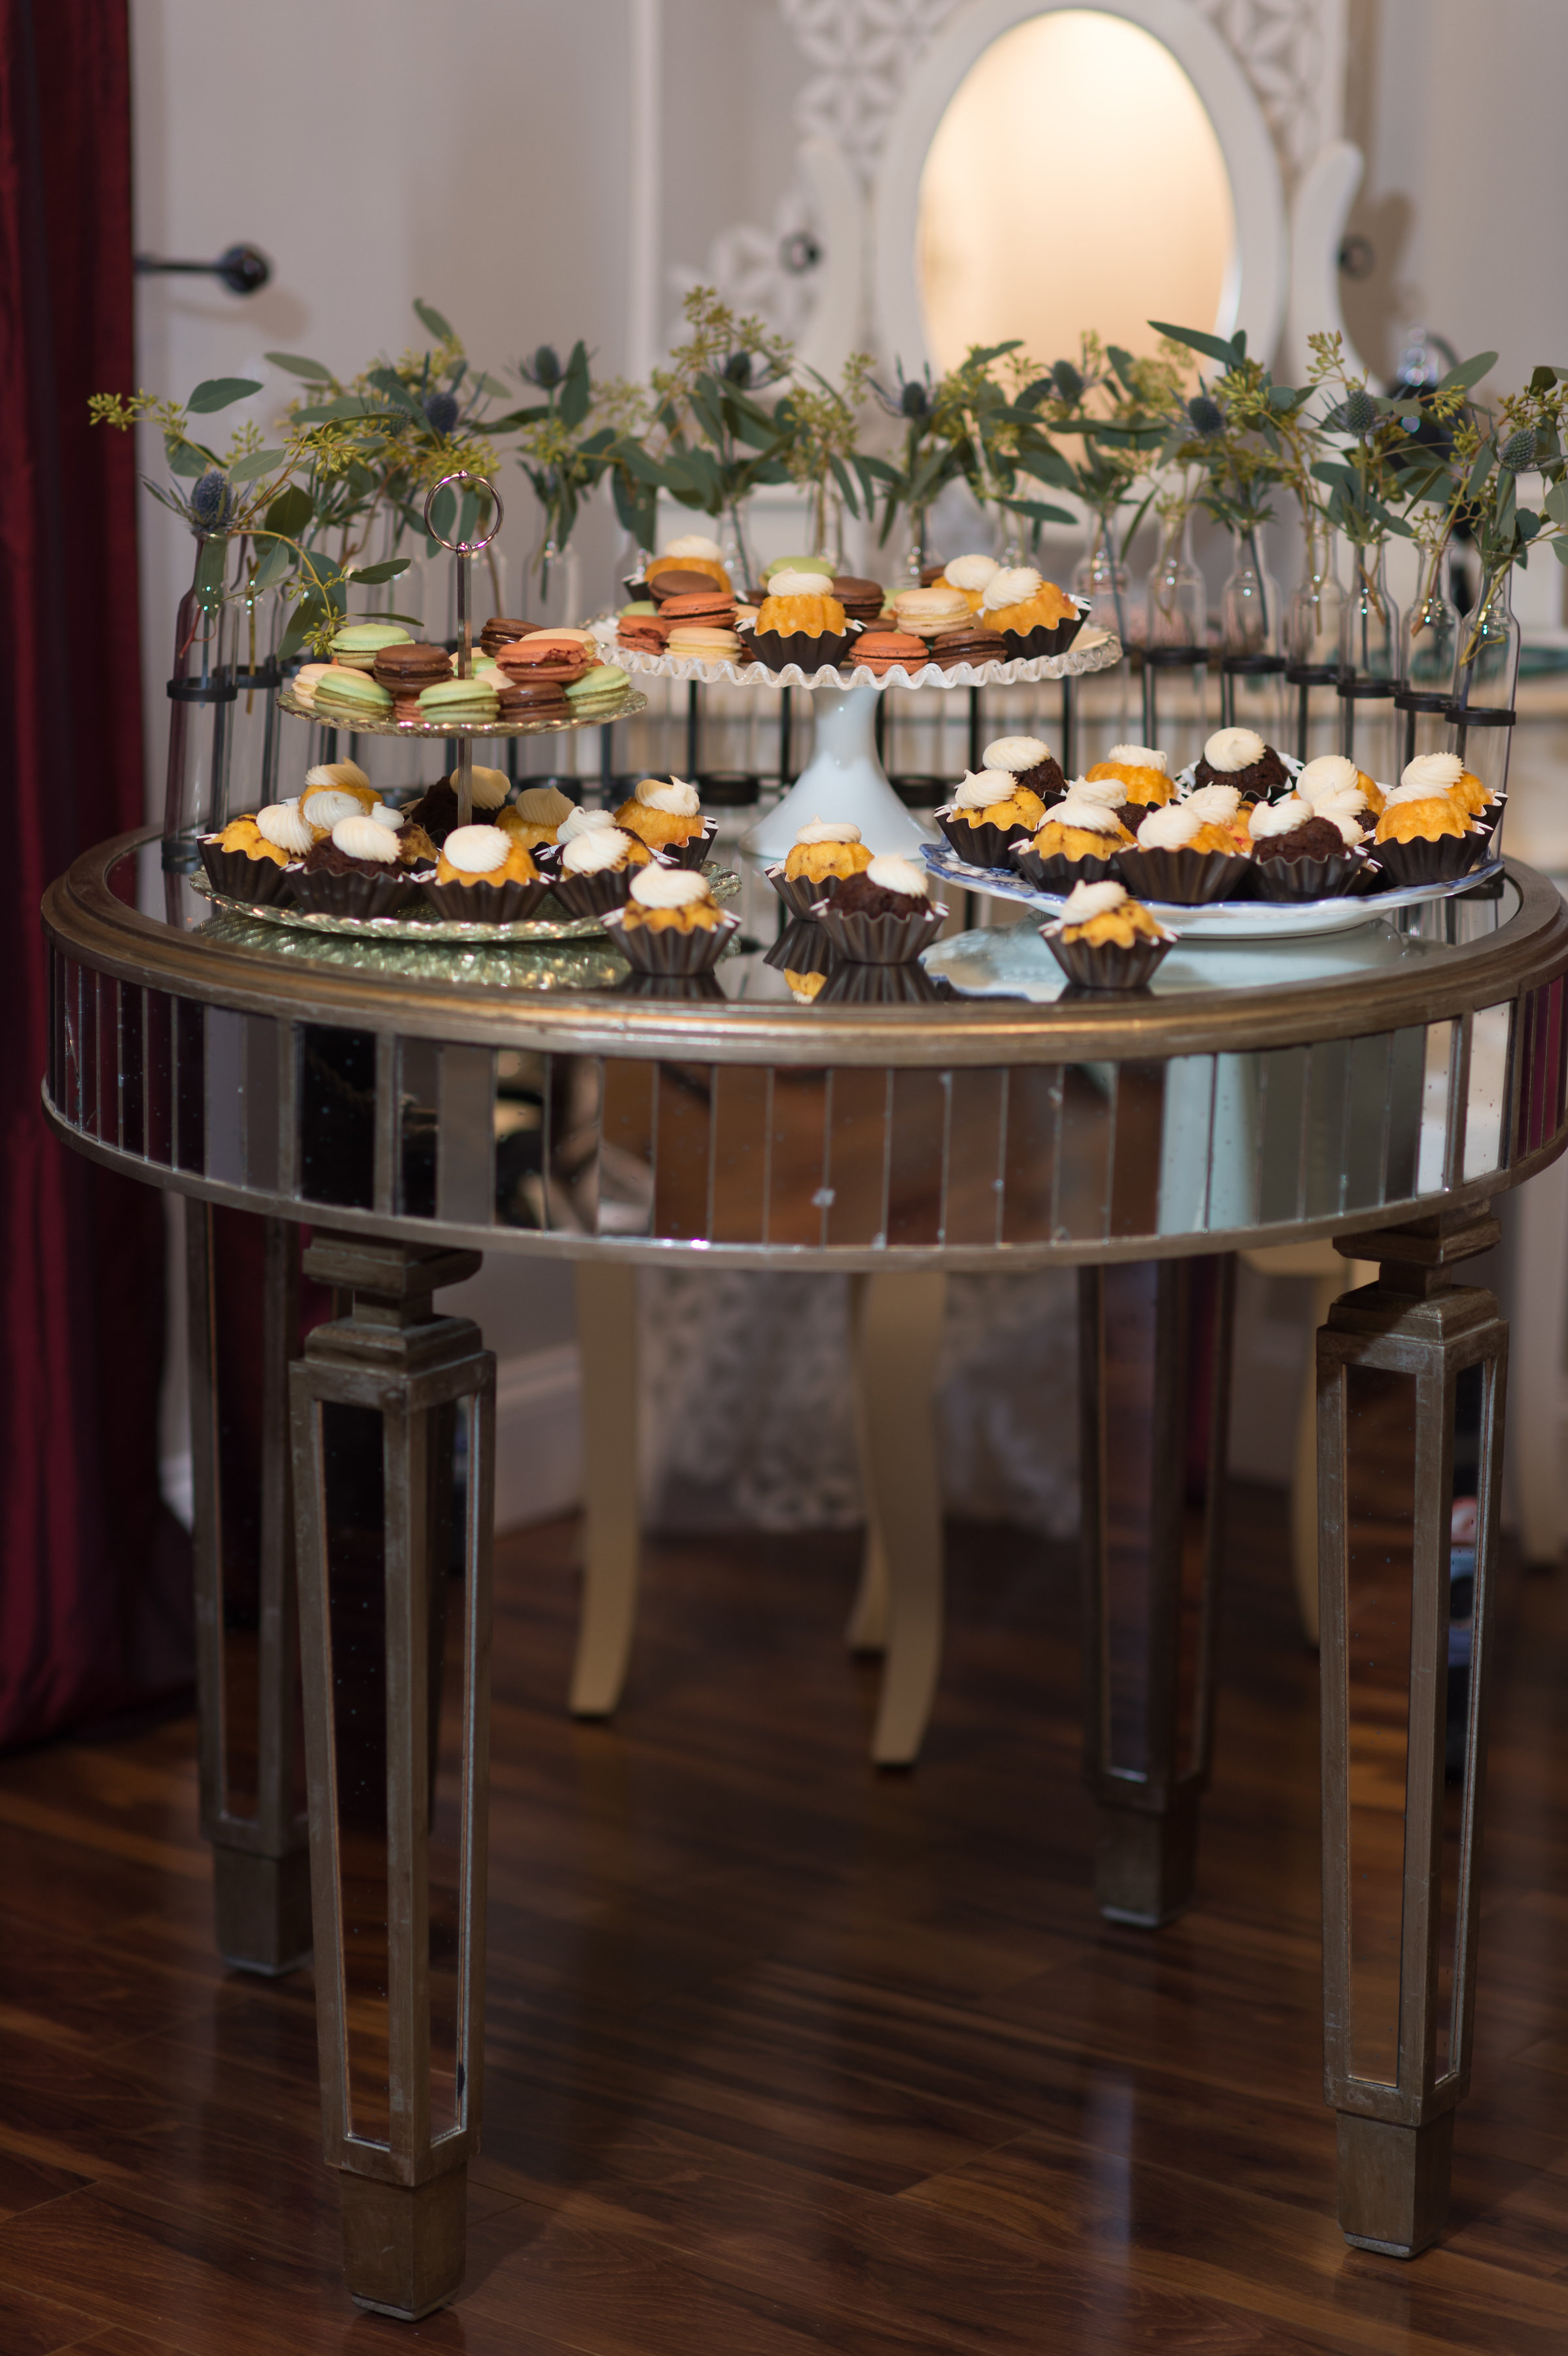 Do you want a super cute dessert table? No problem, there is space for that!                        Photo by: Leah Langley Photography